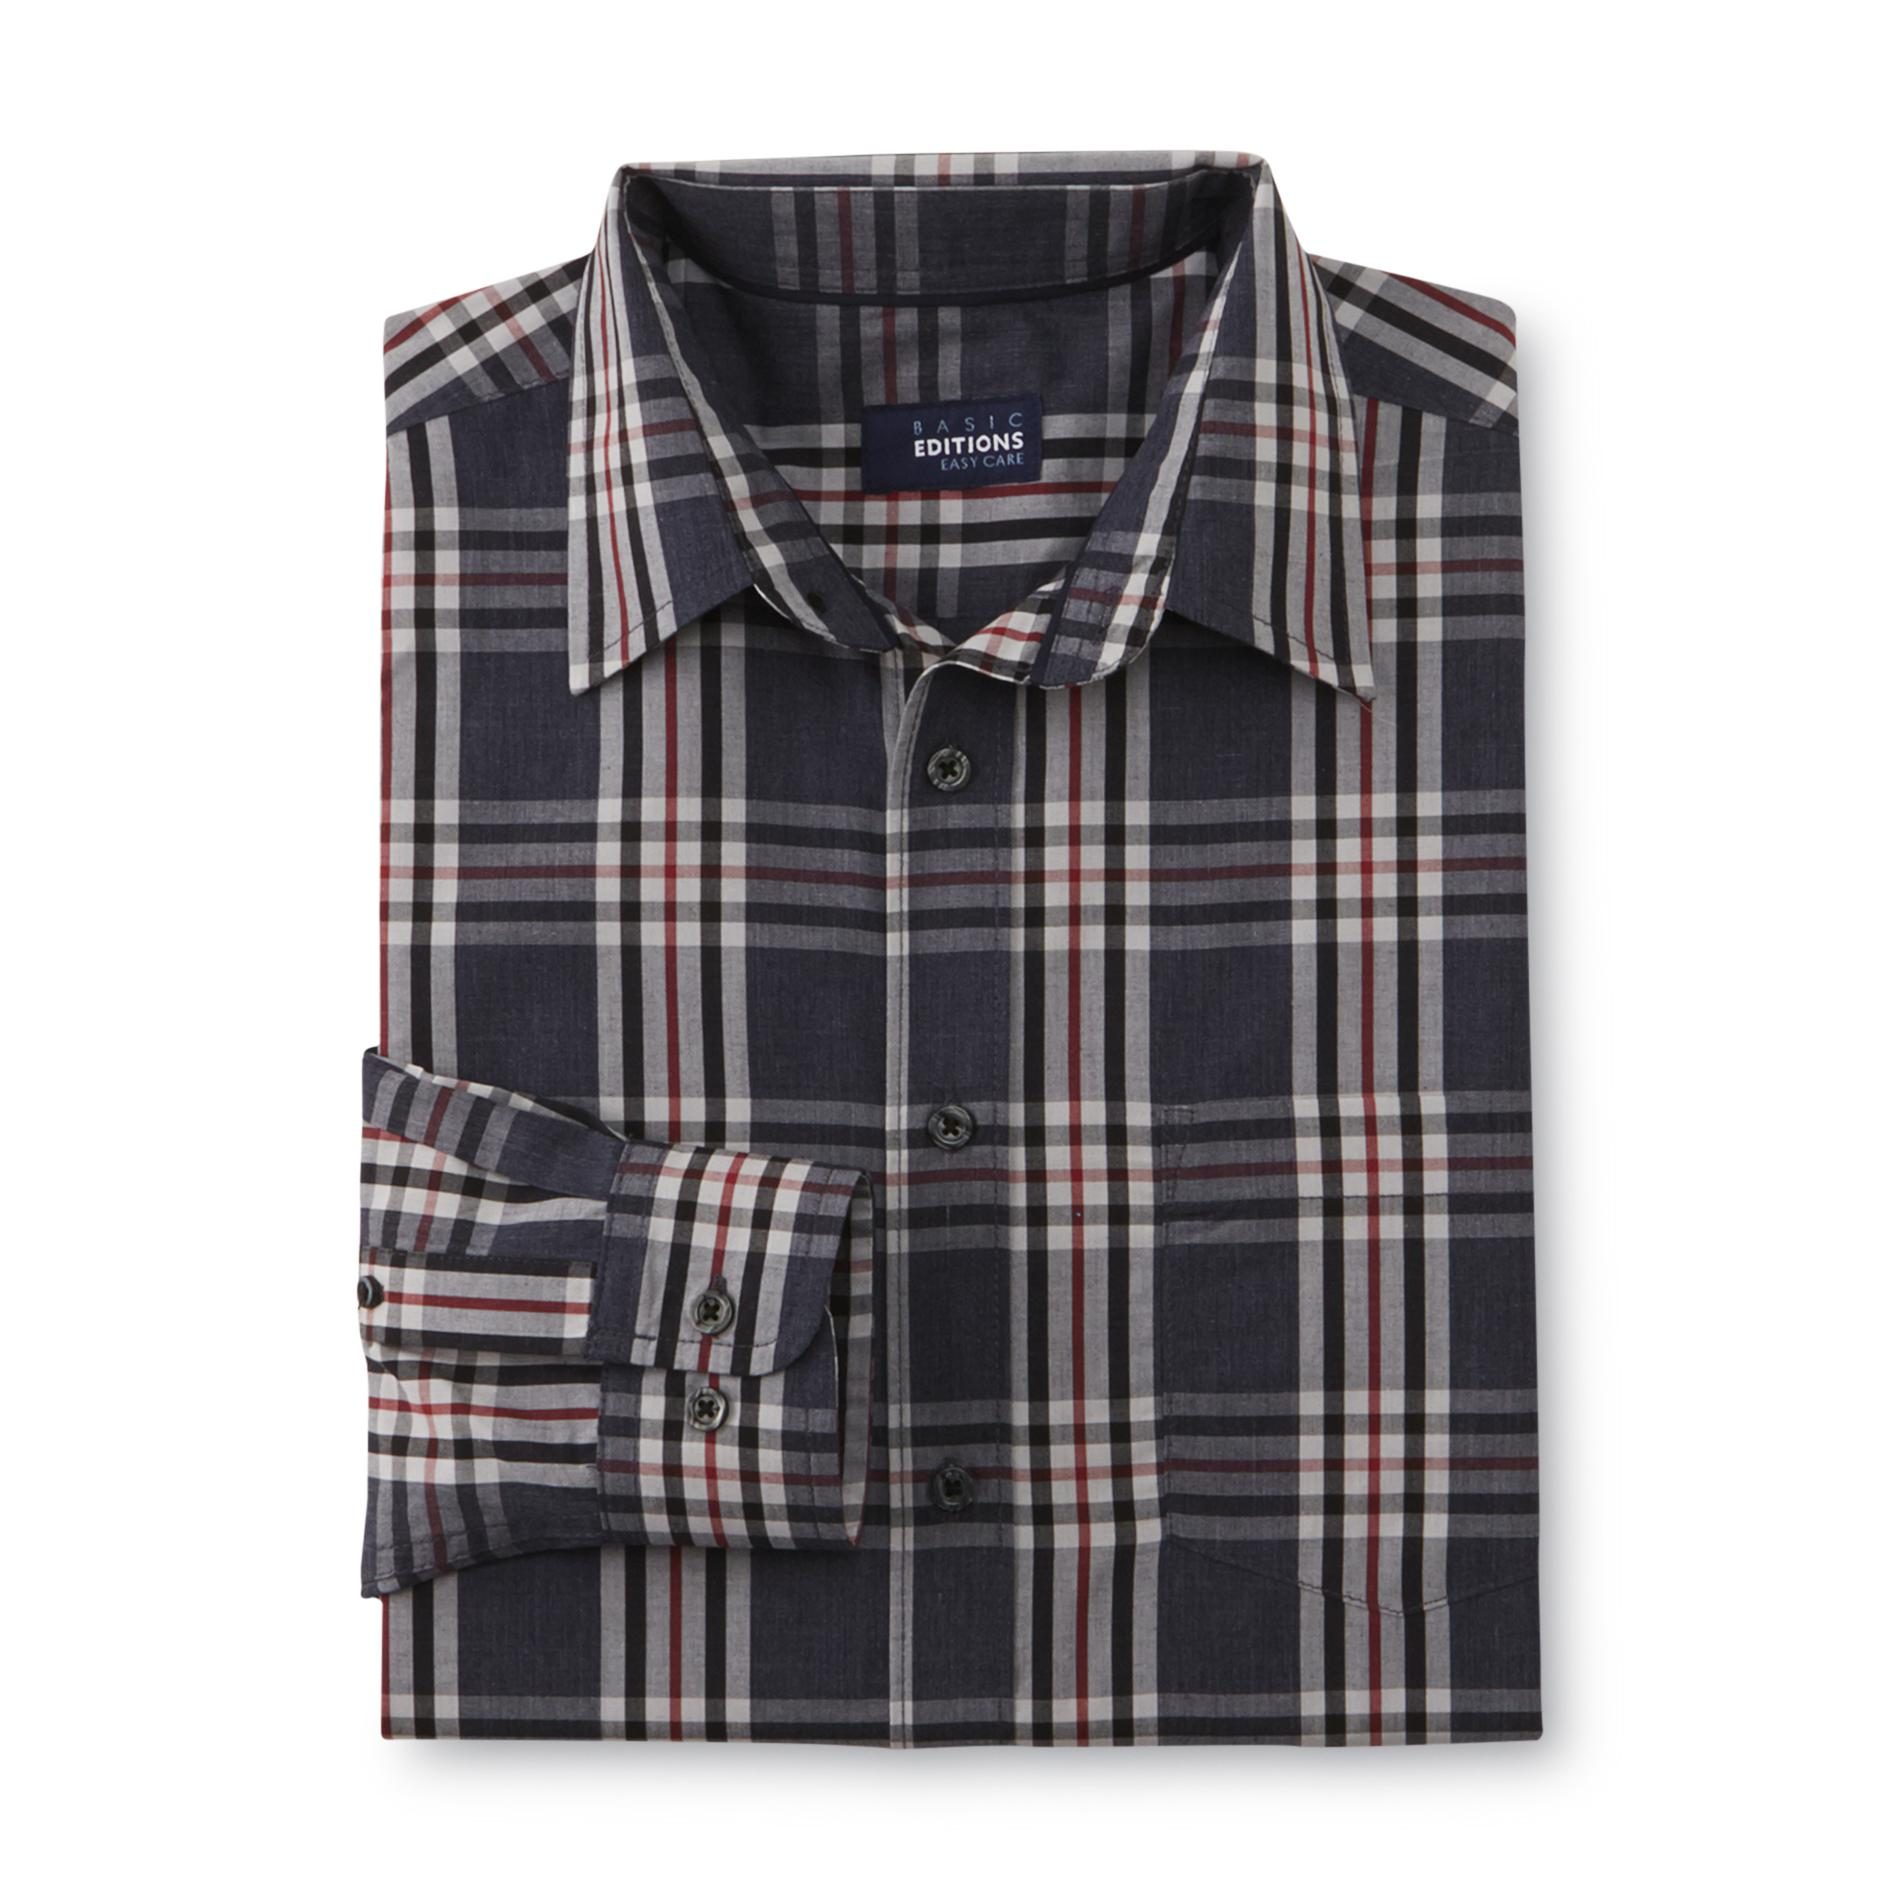 Basic Editions  Men's Easy Care Button-Front Shirt - Plaid